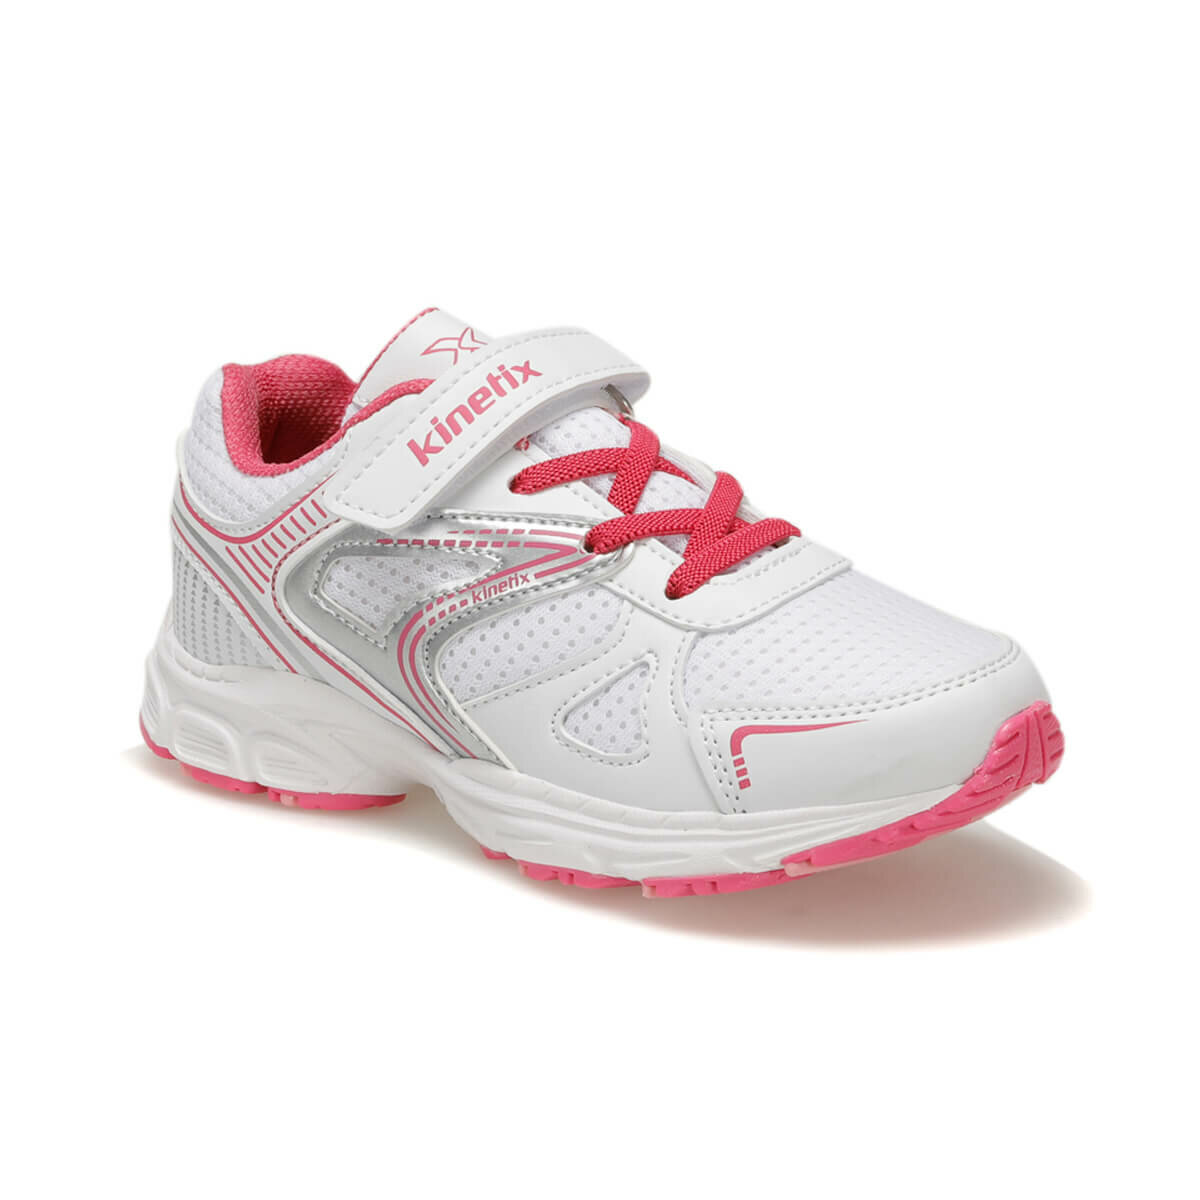 FLO REMOV White Female Child Running Shoes KINETIX